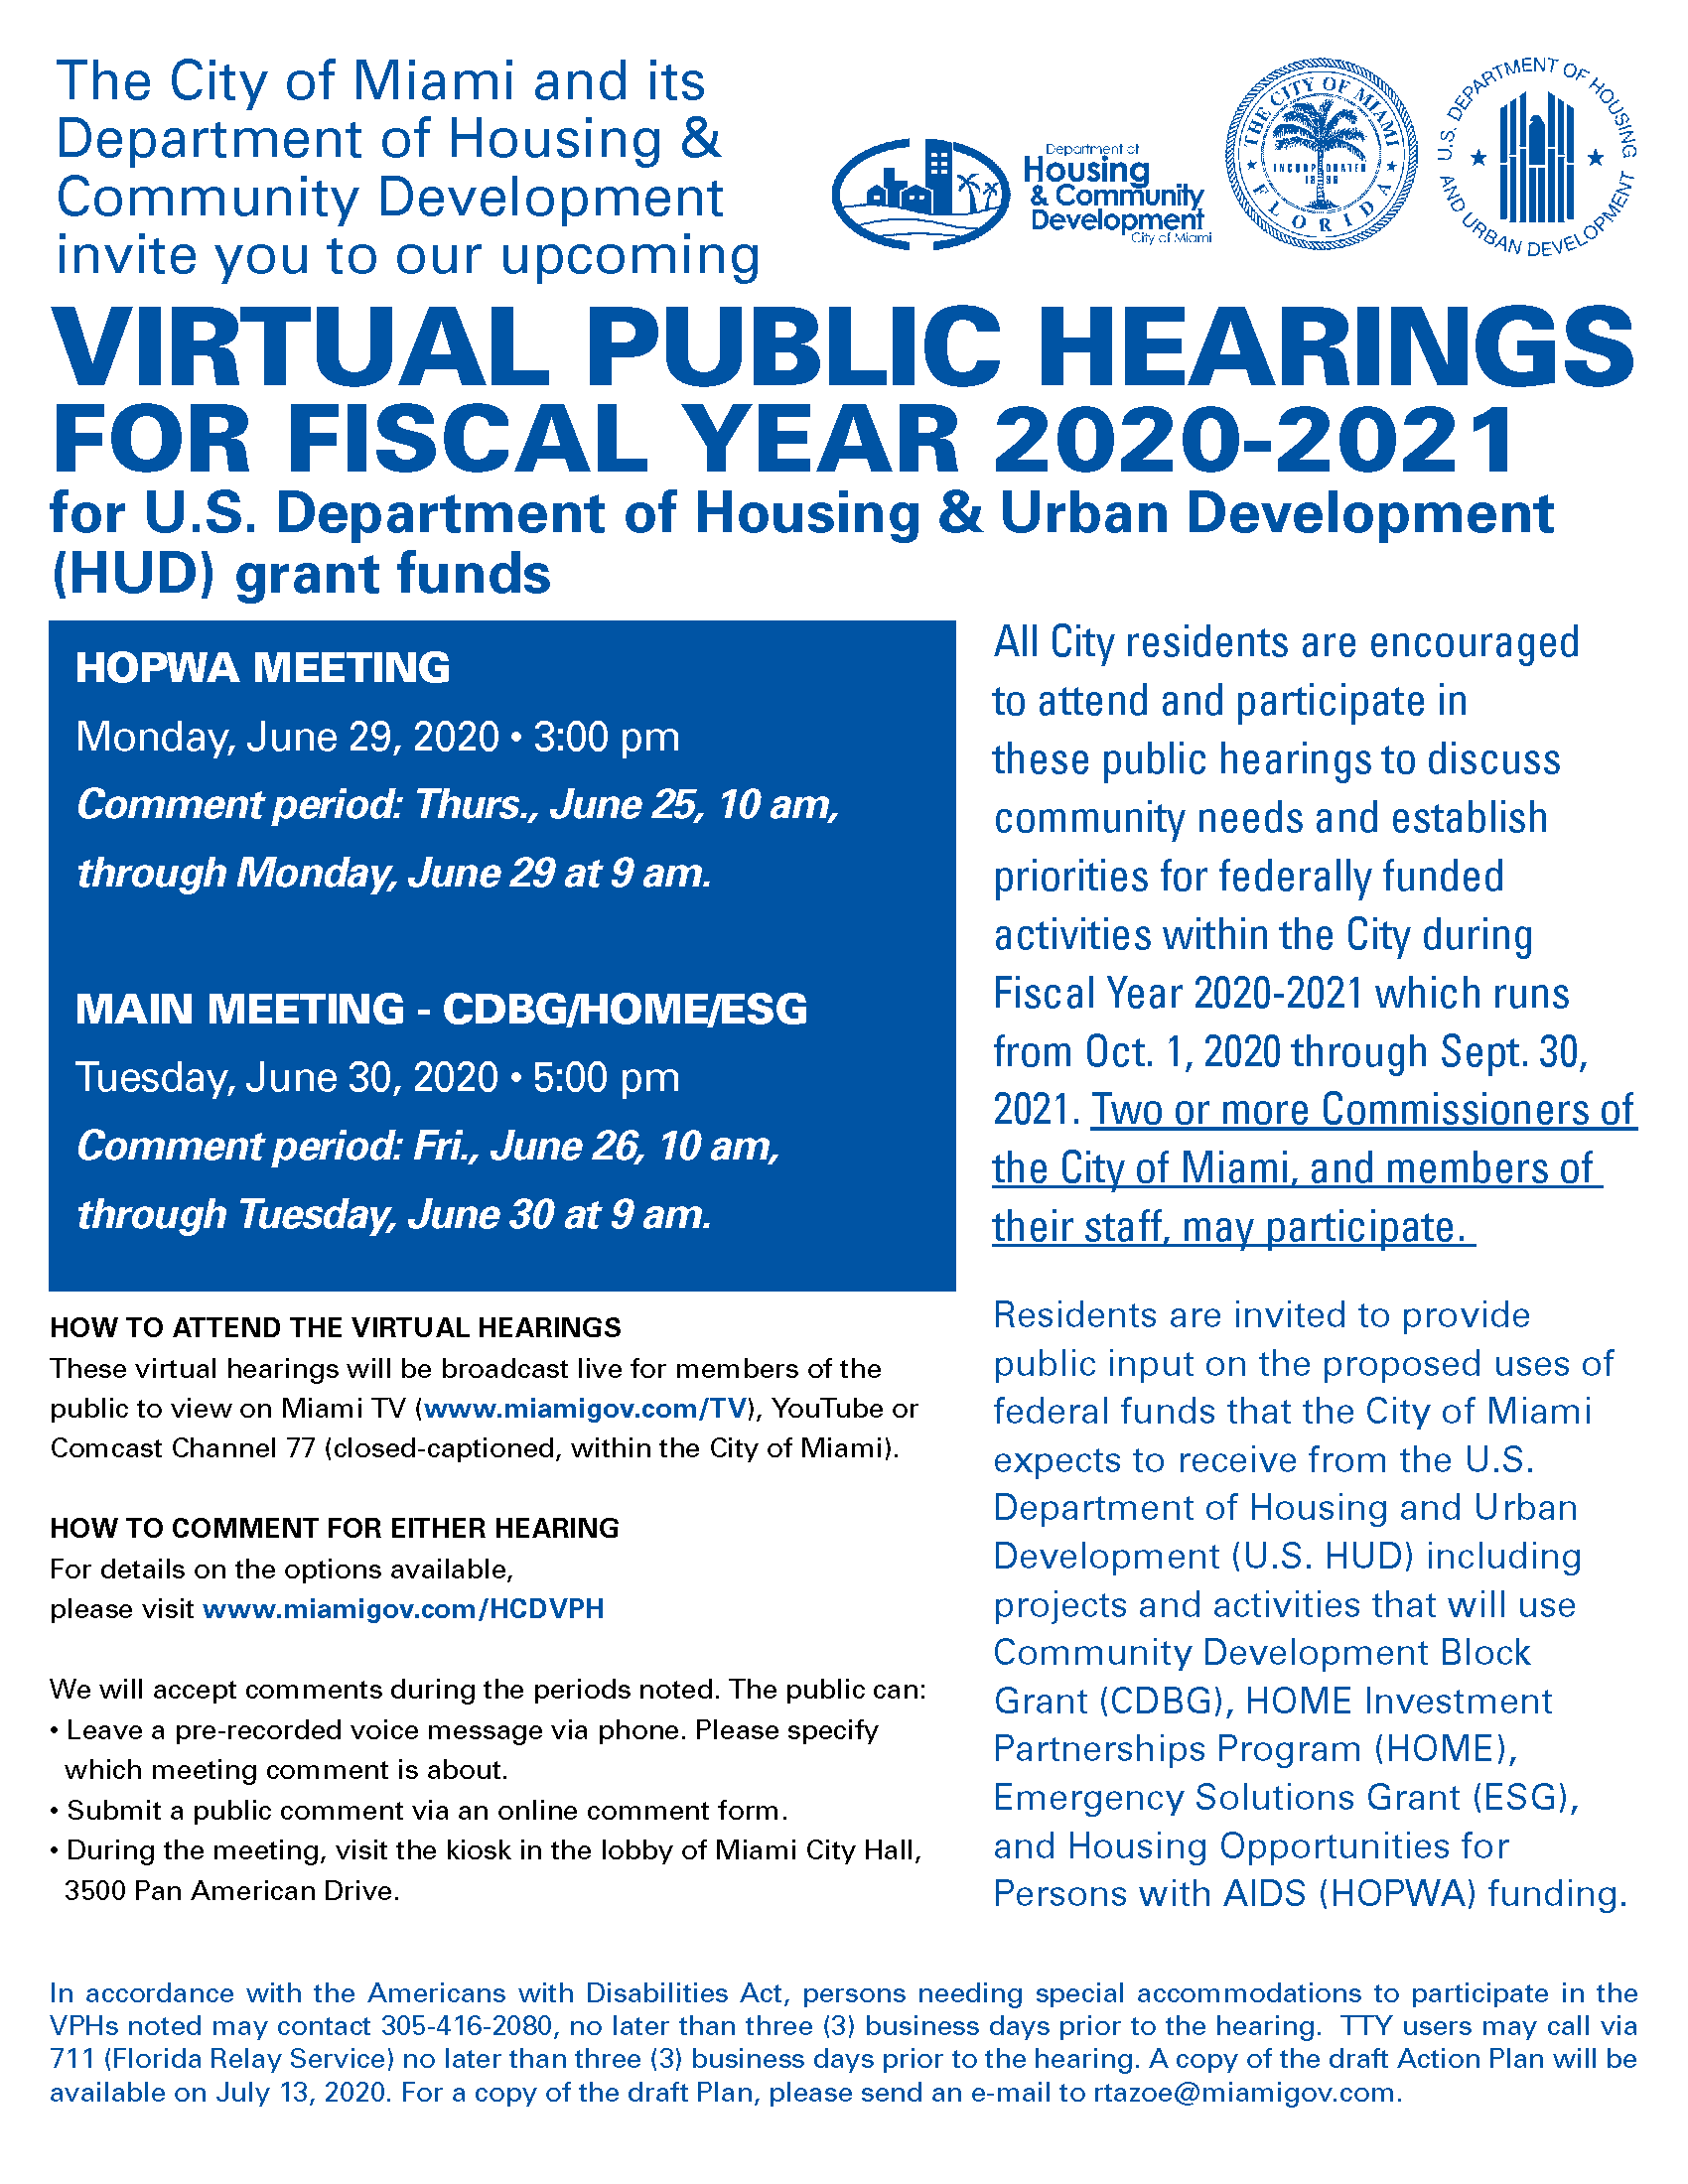 ActionPlan public hearing flyer 2020-2021